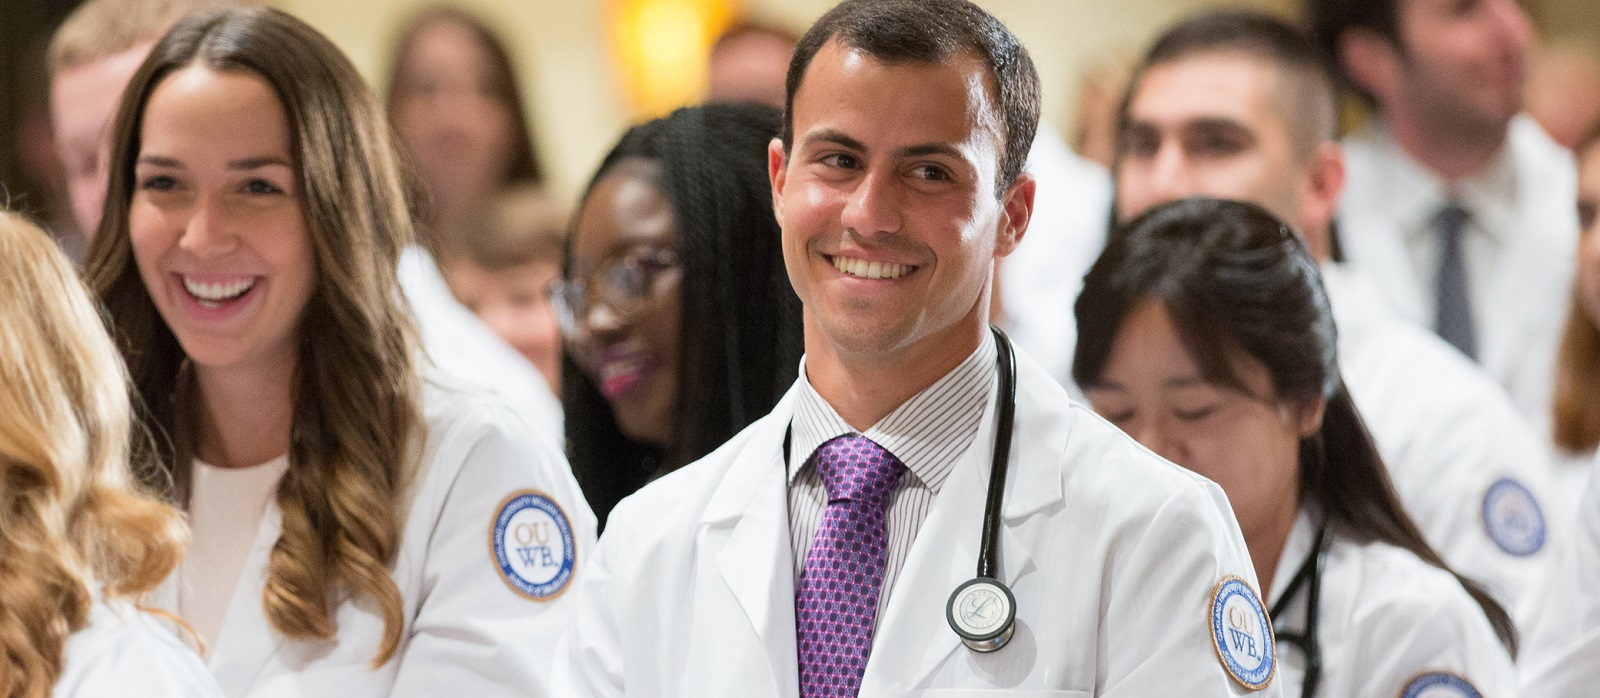 A student smiles as he stands in the crowd at the White Coat ceremony.